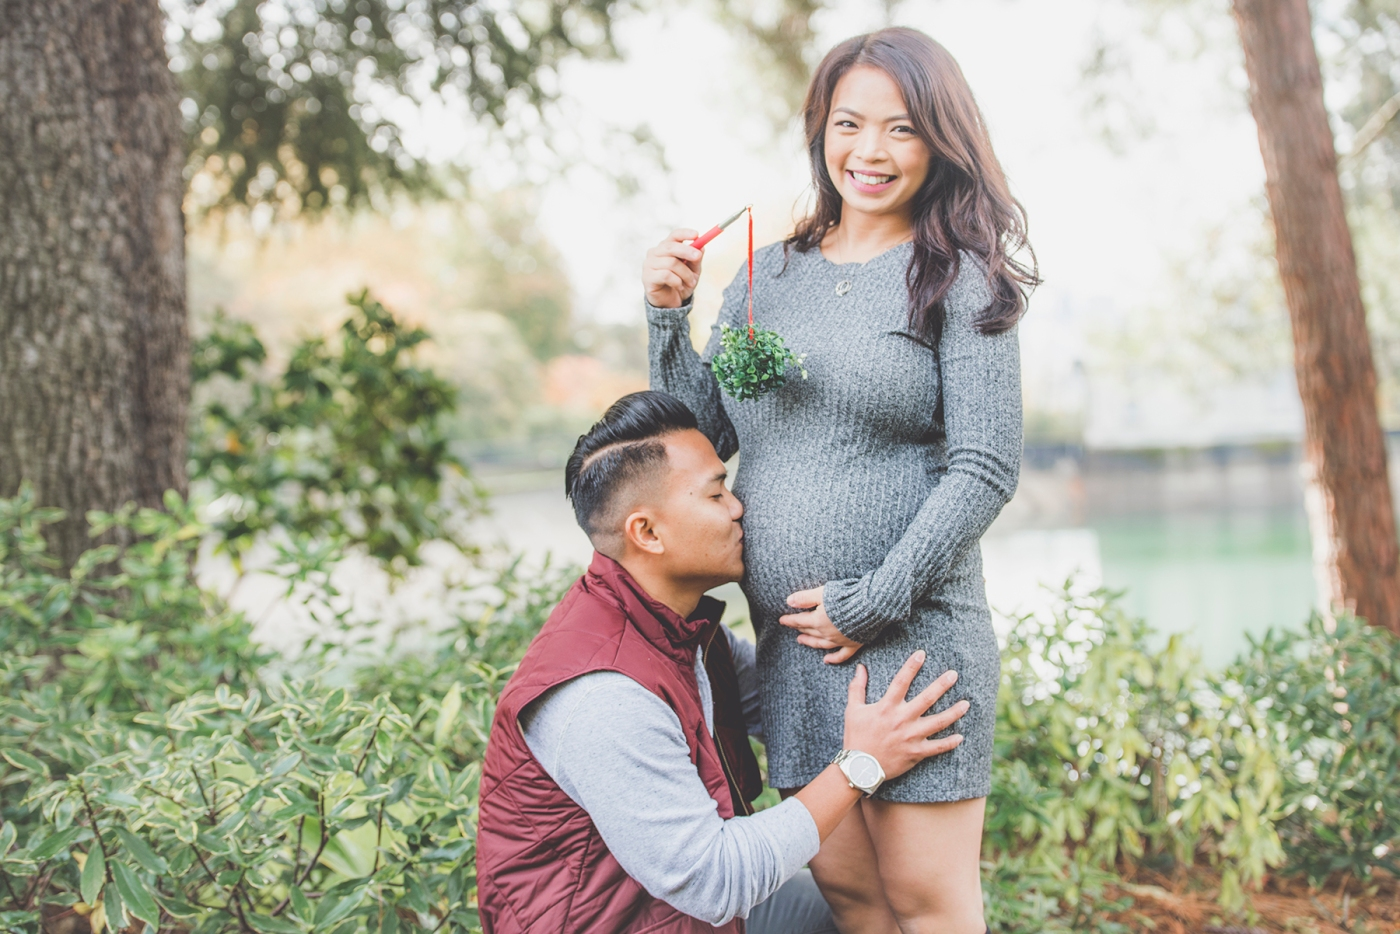 paula_p_maternity_the_royal_squirrel_seattle_family_photographer_2016_dsc_8058